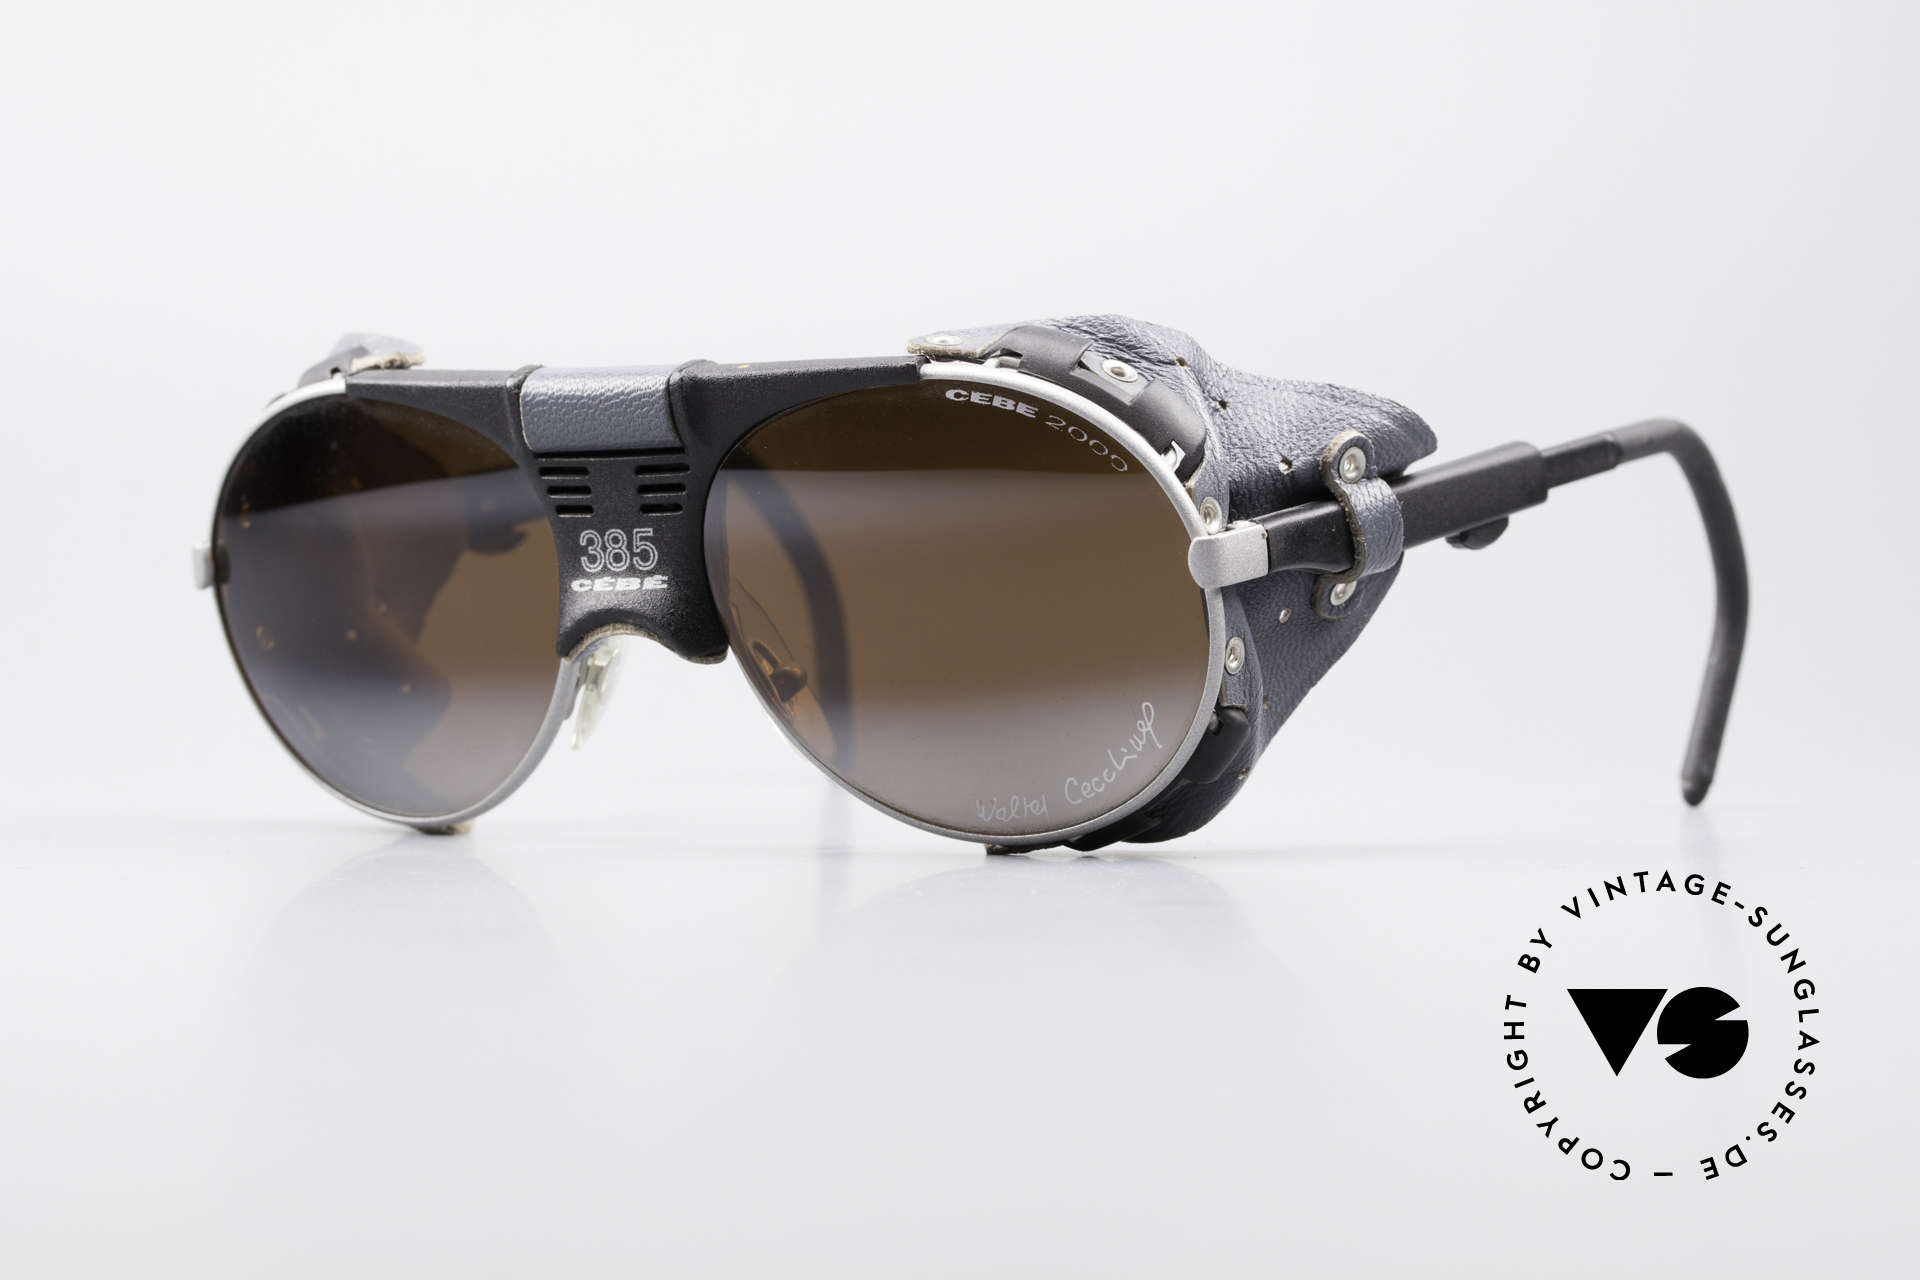 Cebe 385 Walter Cecchinel Sunglasses, vintage Cebe sports shades - made for extreme purpose, Made for Men and Women